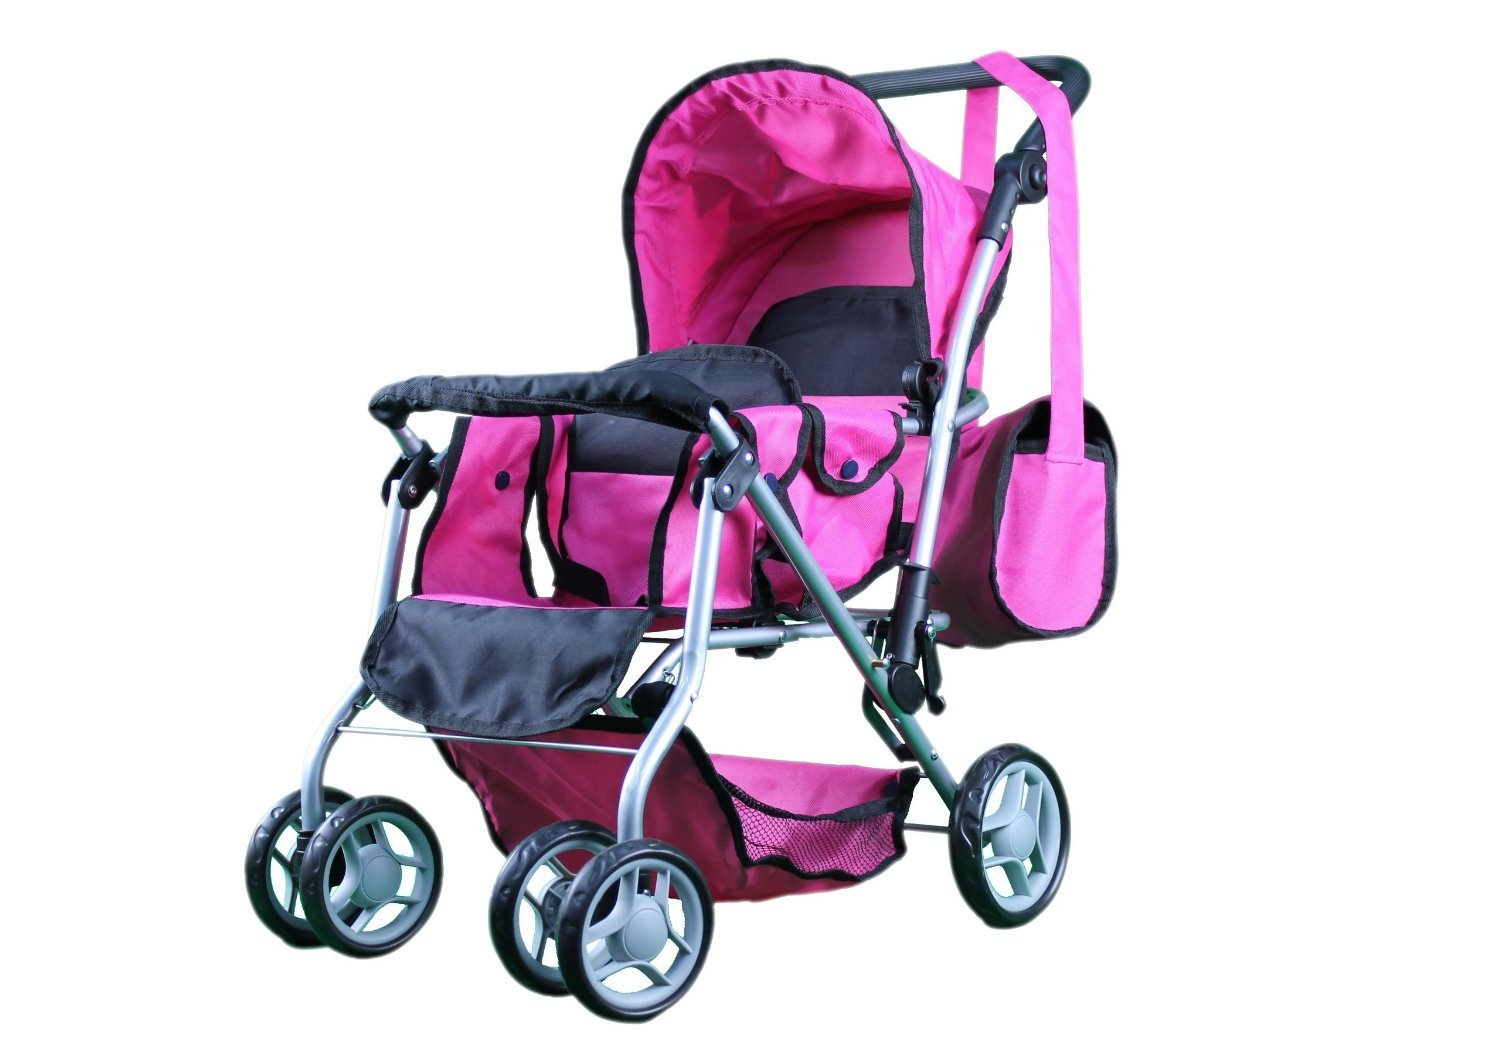 Mommy & Me TWIN Doll Pram Back to Back with Swiveling Wheels & Free Carriage Bag - 9668 9651-B-2